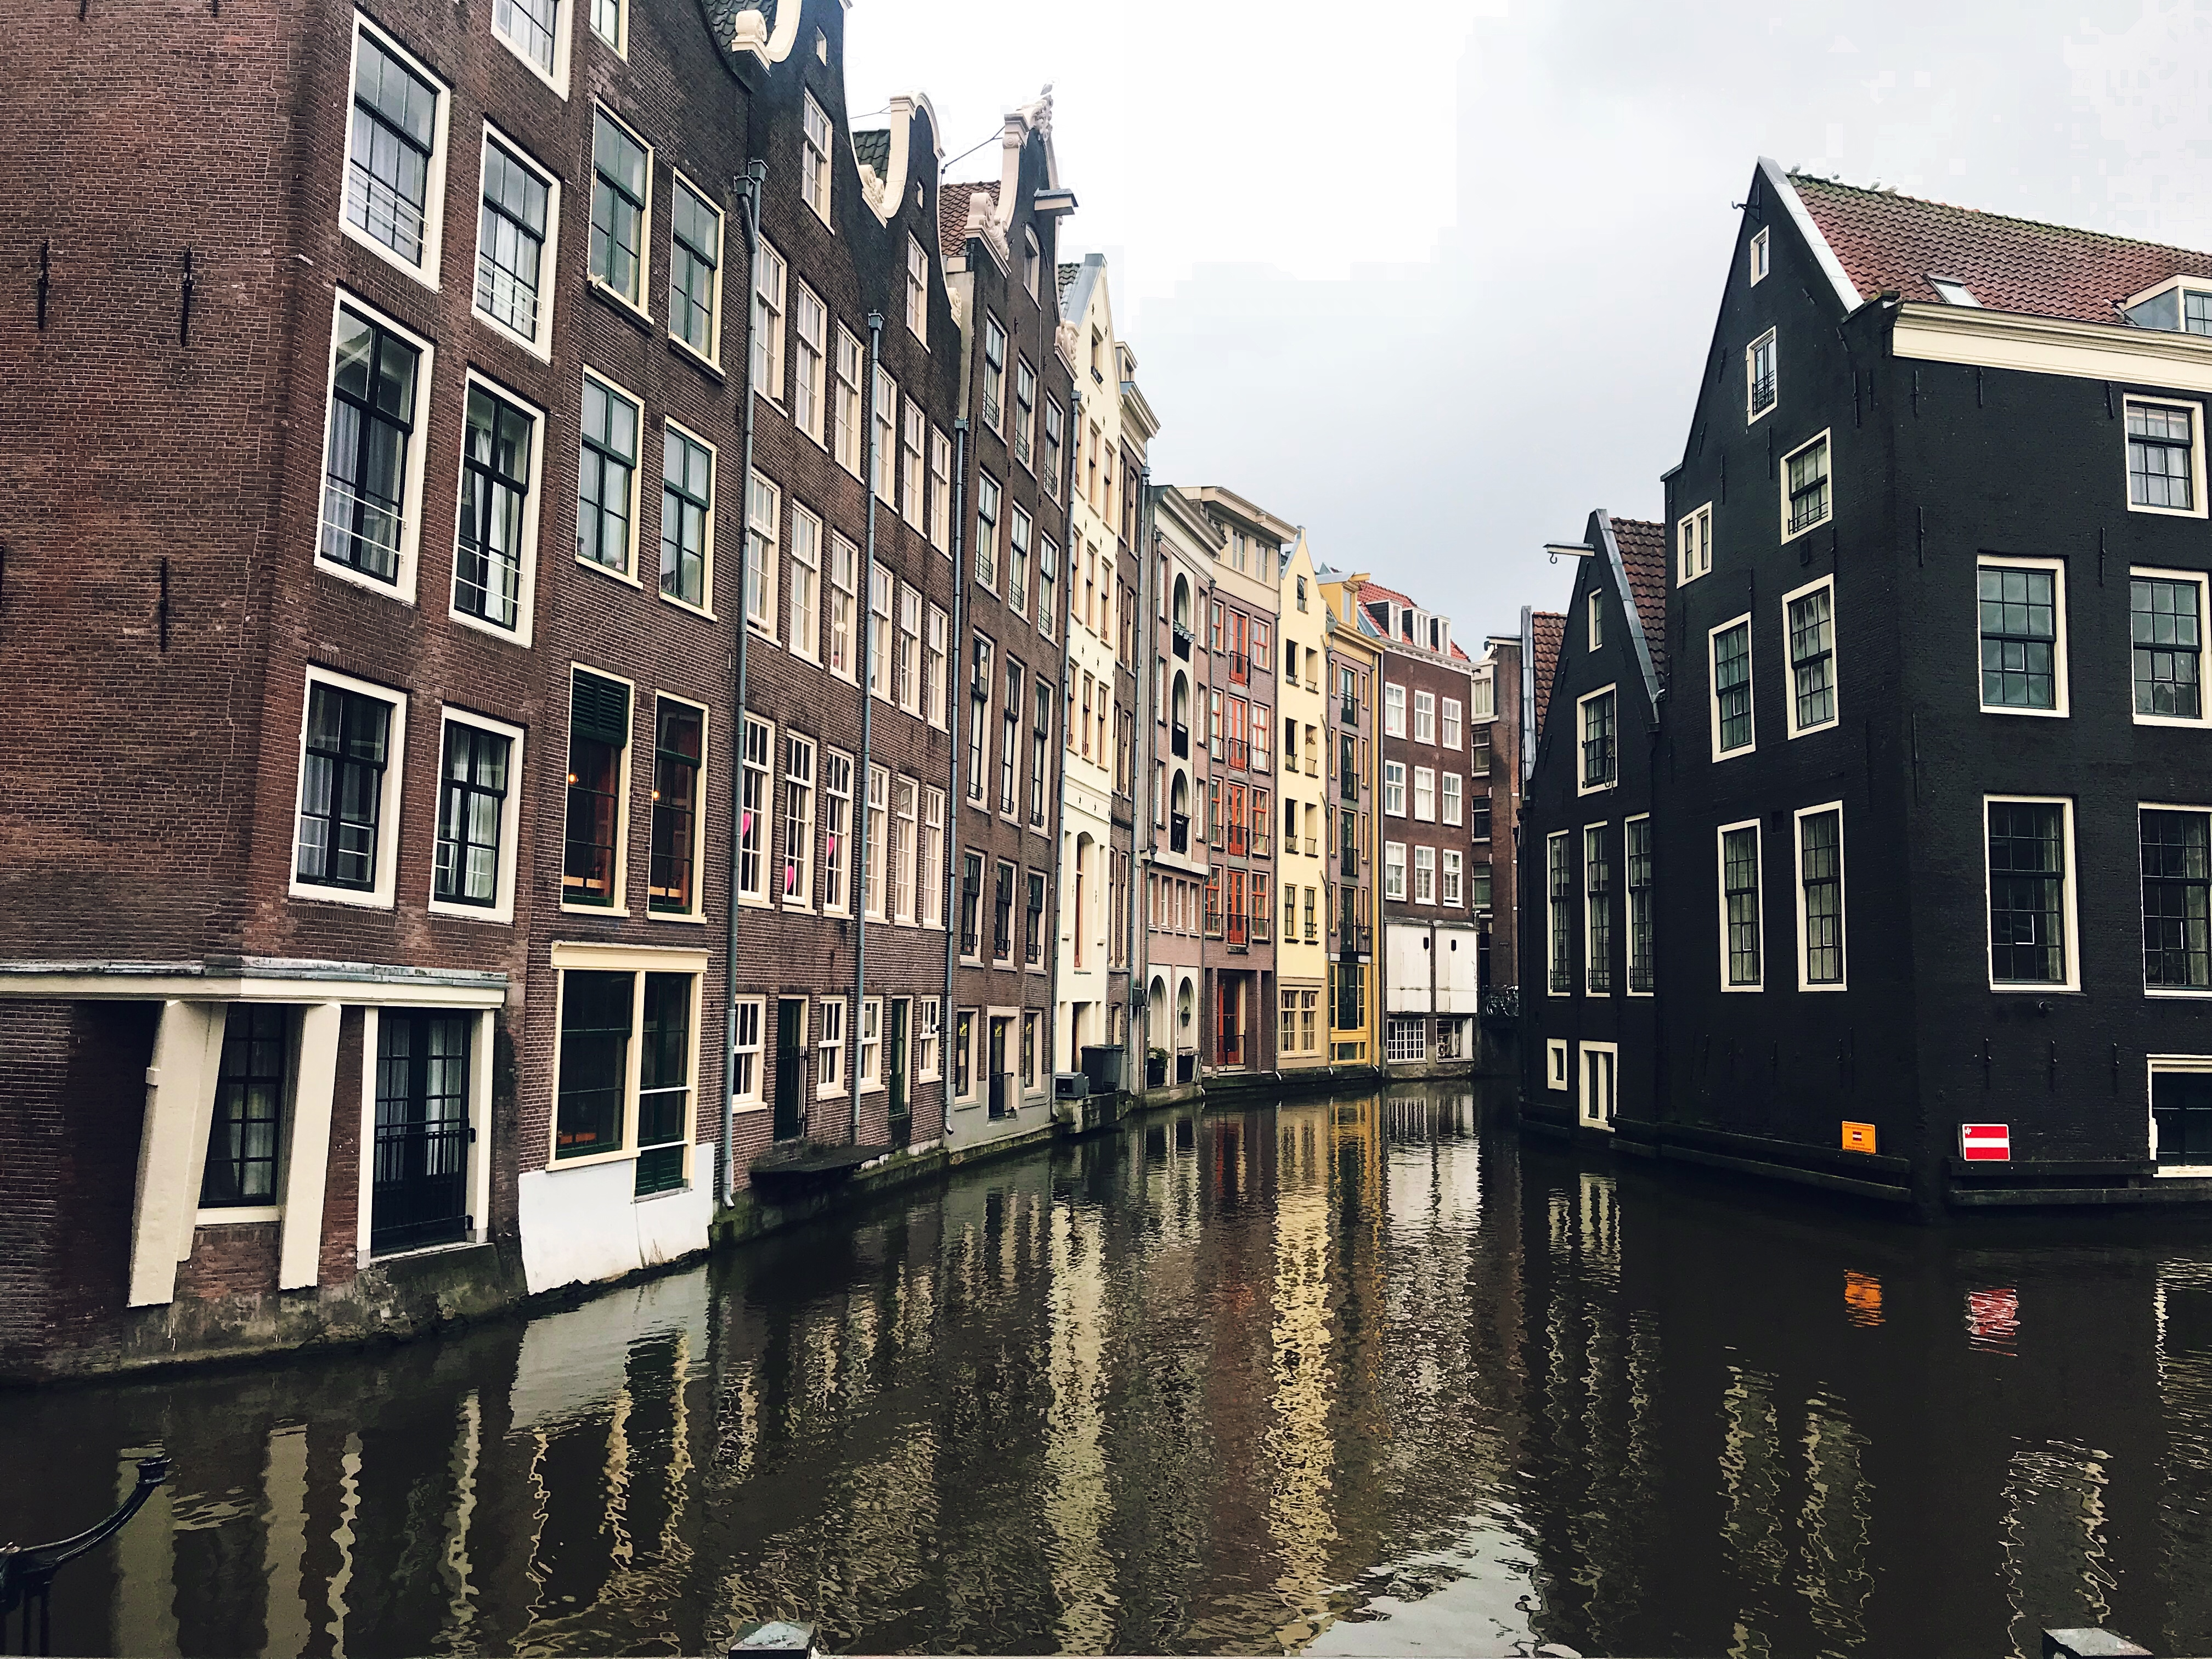 Daaam Amsterdam, It's A Vibe! - DIYWITHJOY